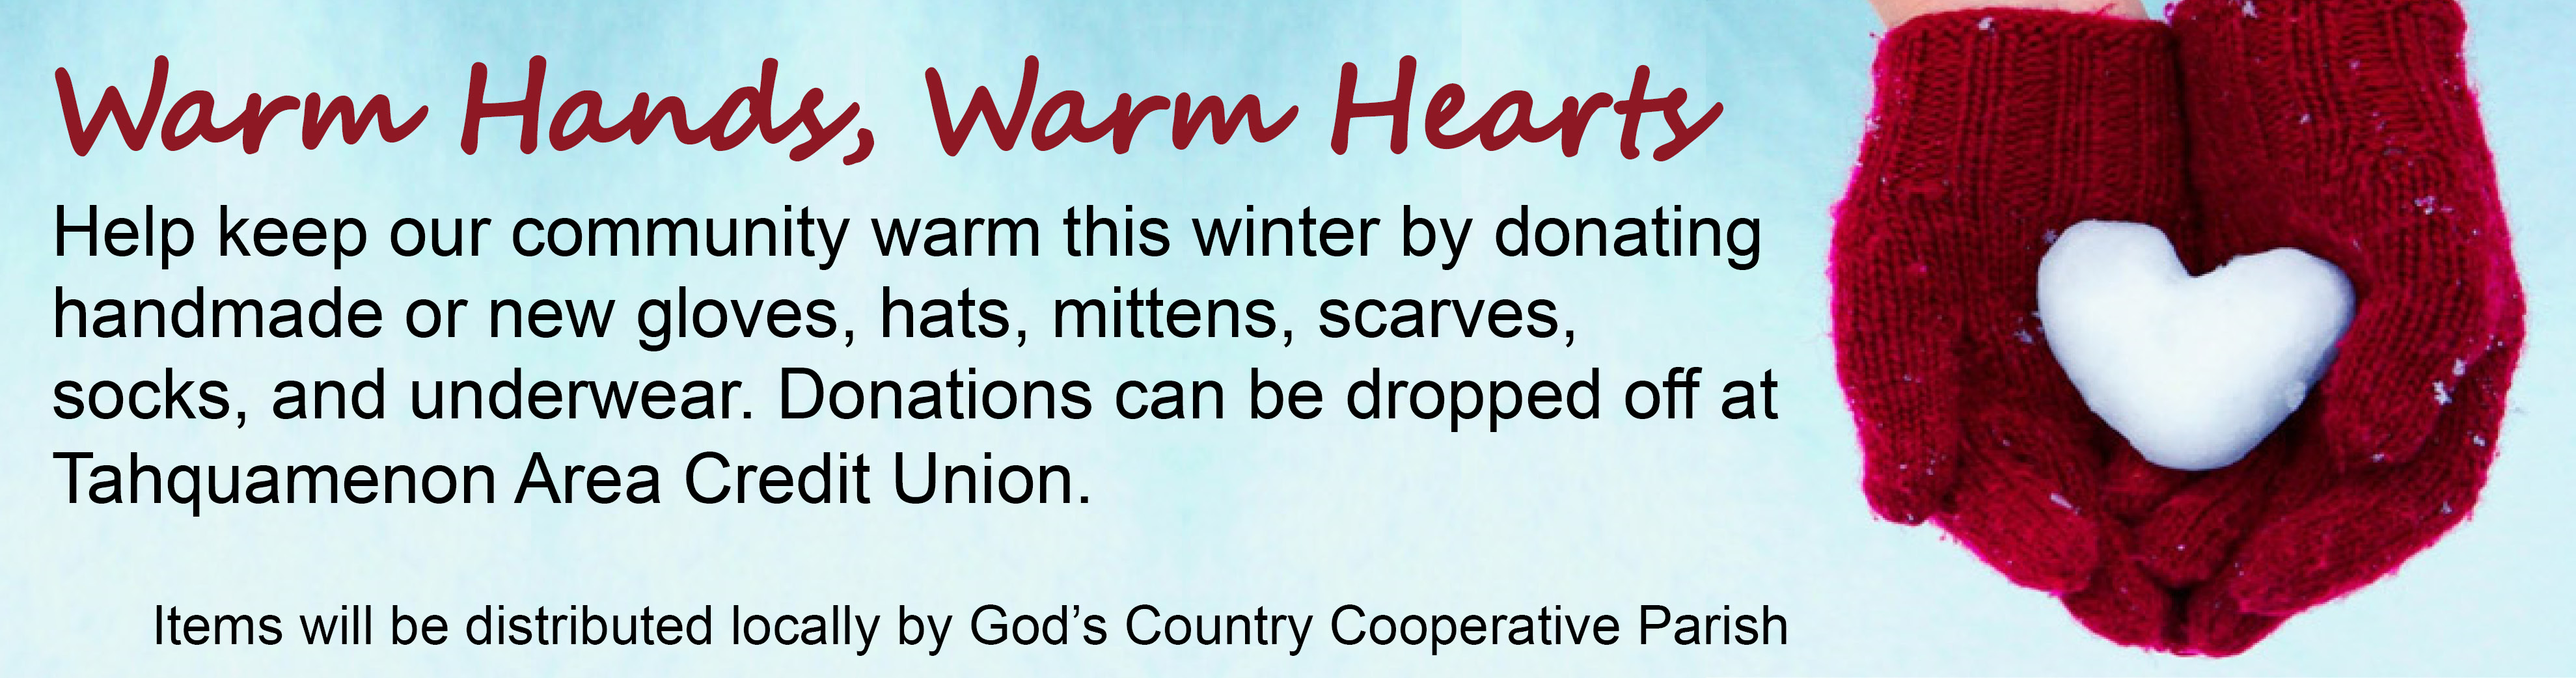 Drop off gloves, hats, mittens, scarves, socks, and underwear at Tahquamenon Area Credit Union to be donated to those in need in our community.